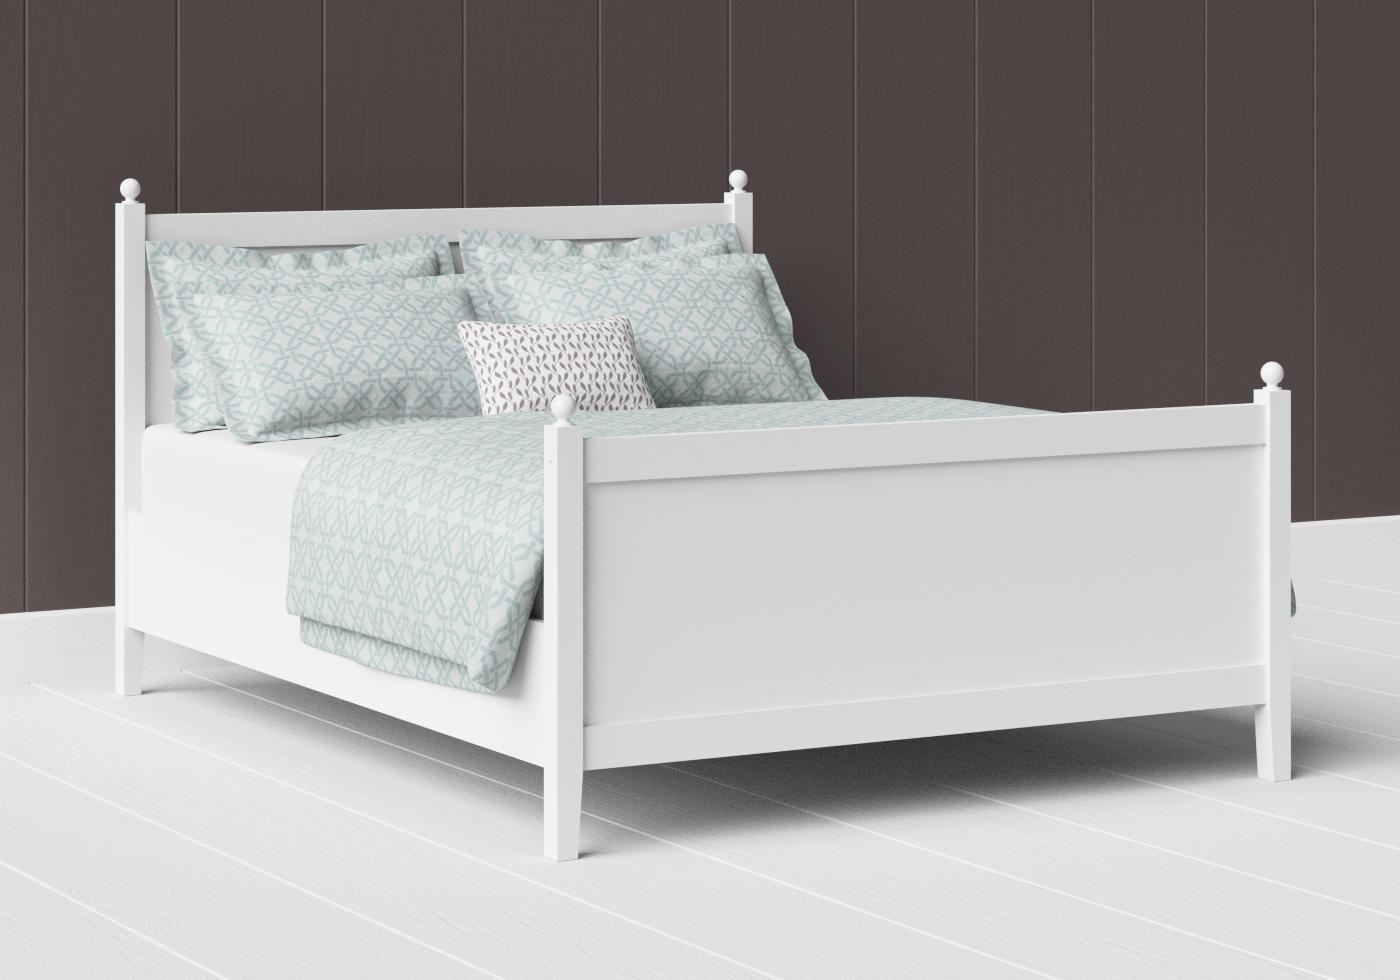 Marbella painted wood bed in satin white